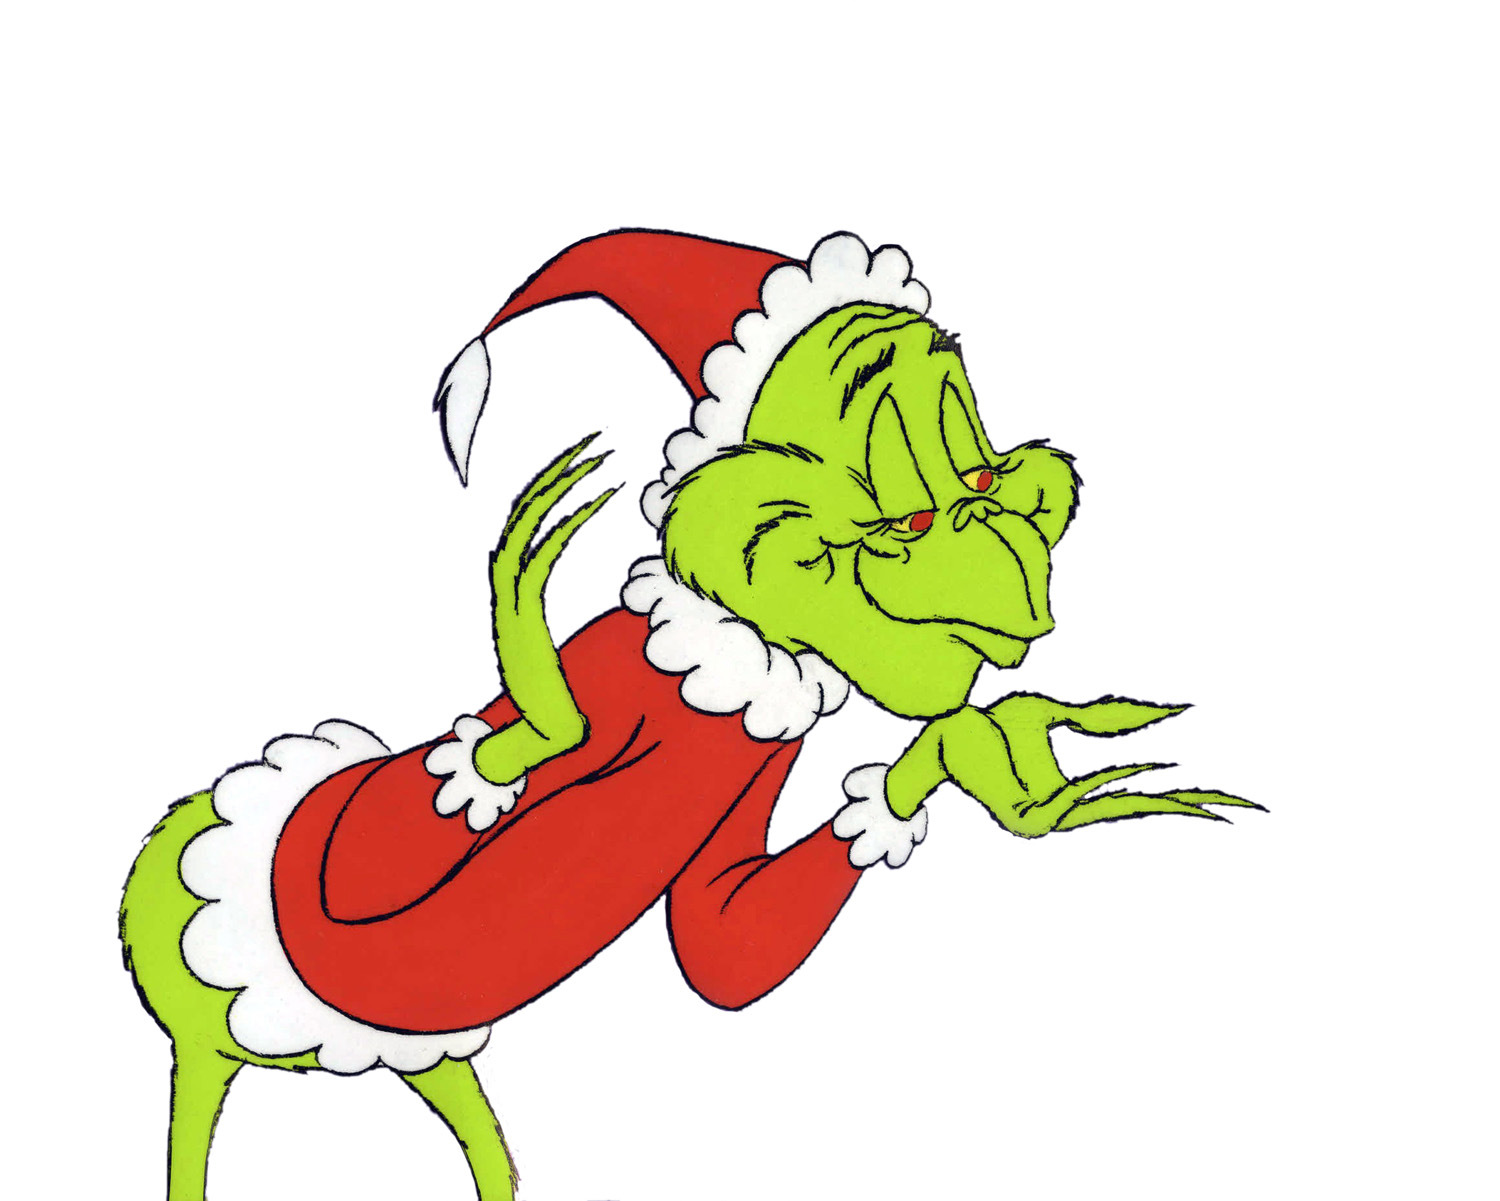 Grinch clipart sneaky. Luxury idea cartoon cilpart